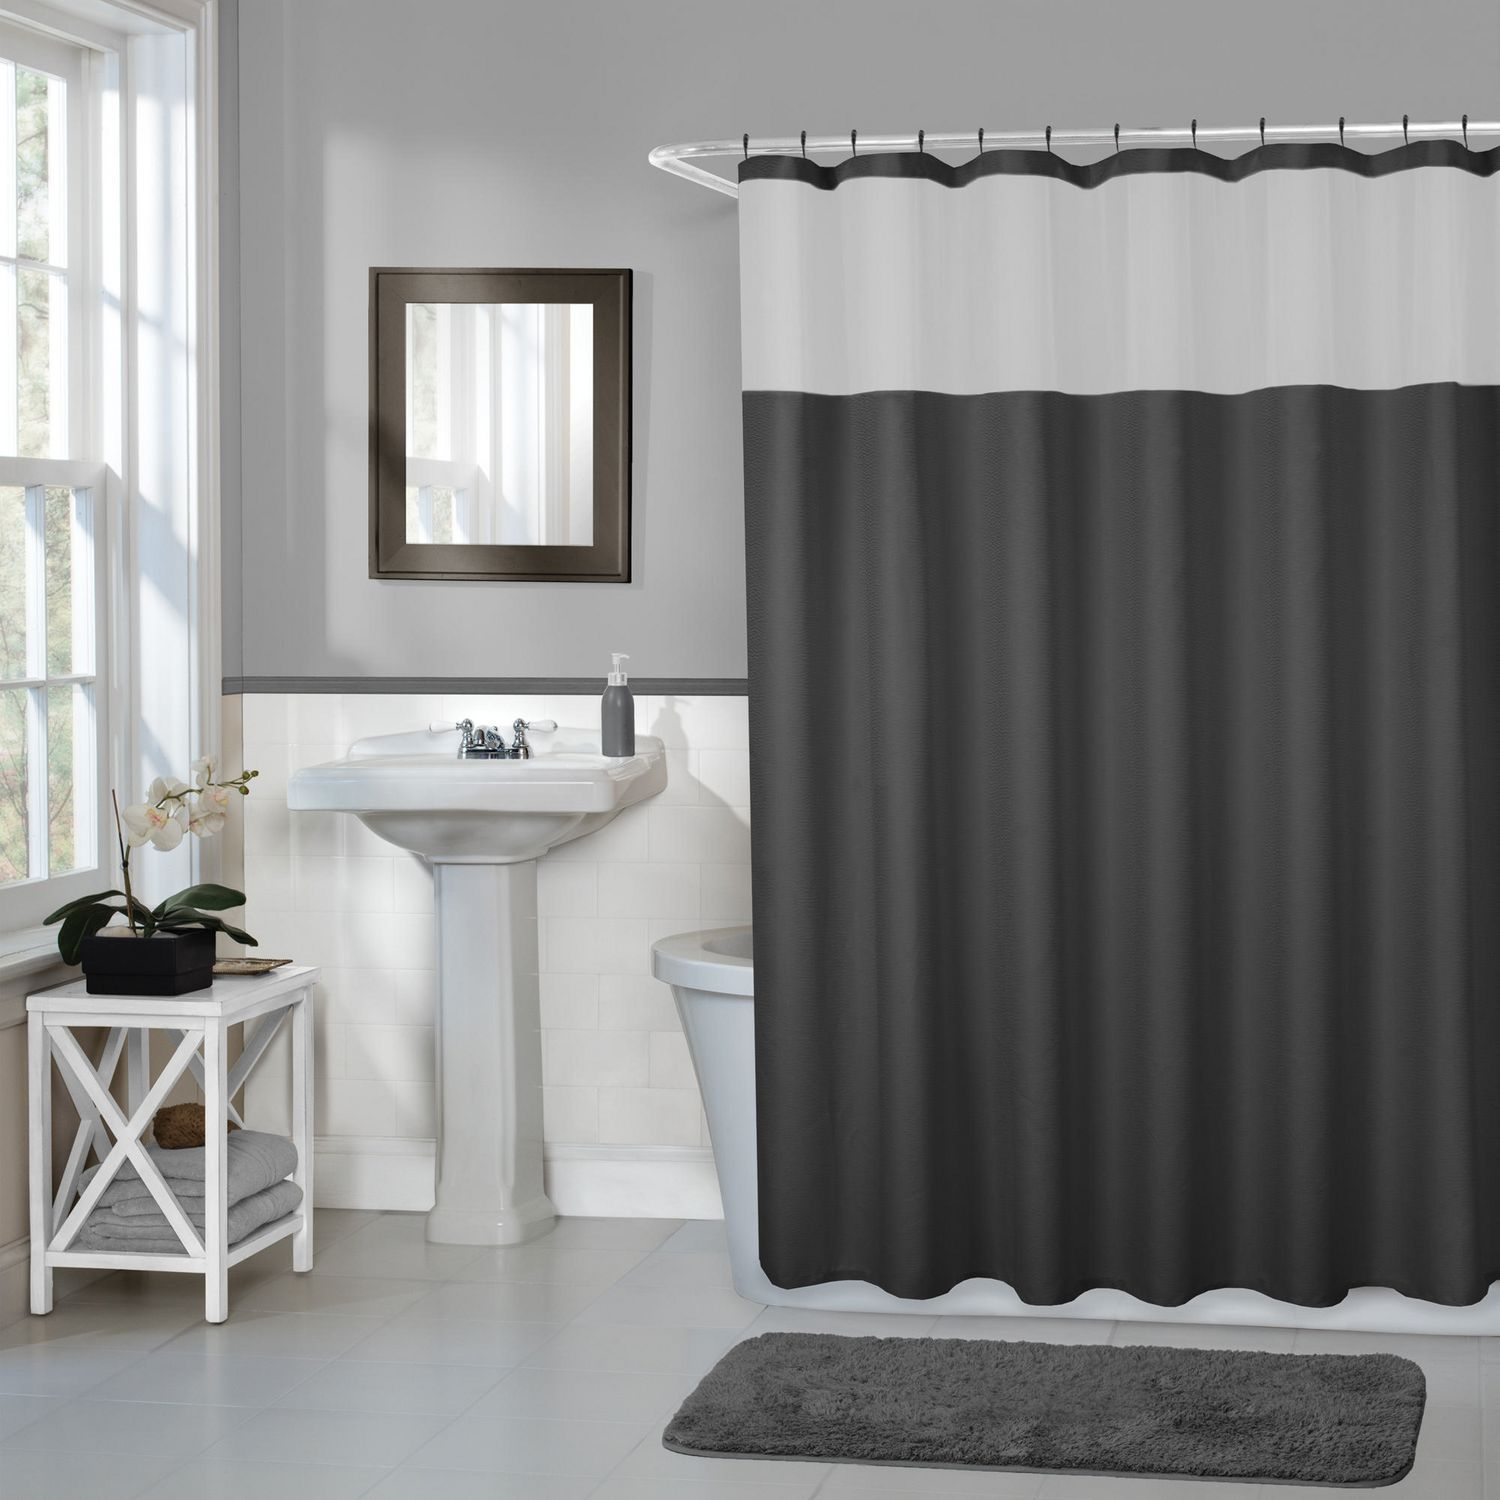 Hometrends Home Trends Smart Curtains Hendrix Fabric Shower Curtain With Attached Roller Glide Hooks 70 Inches X 72 Inches Black